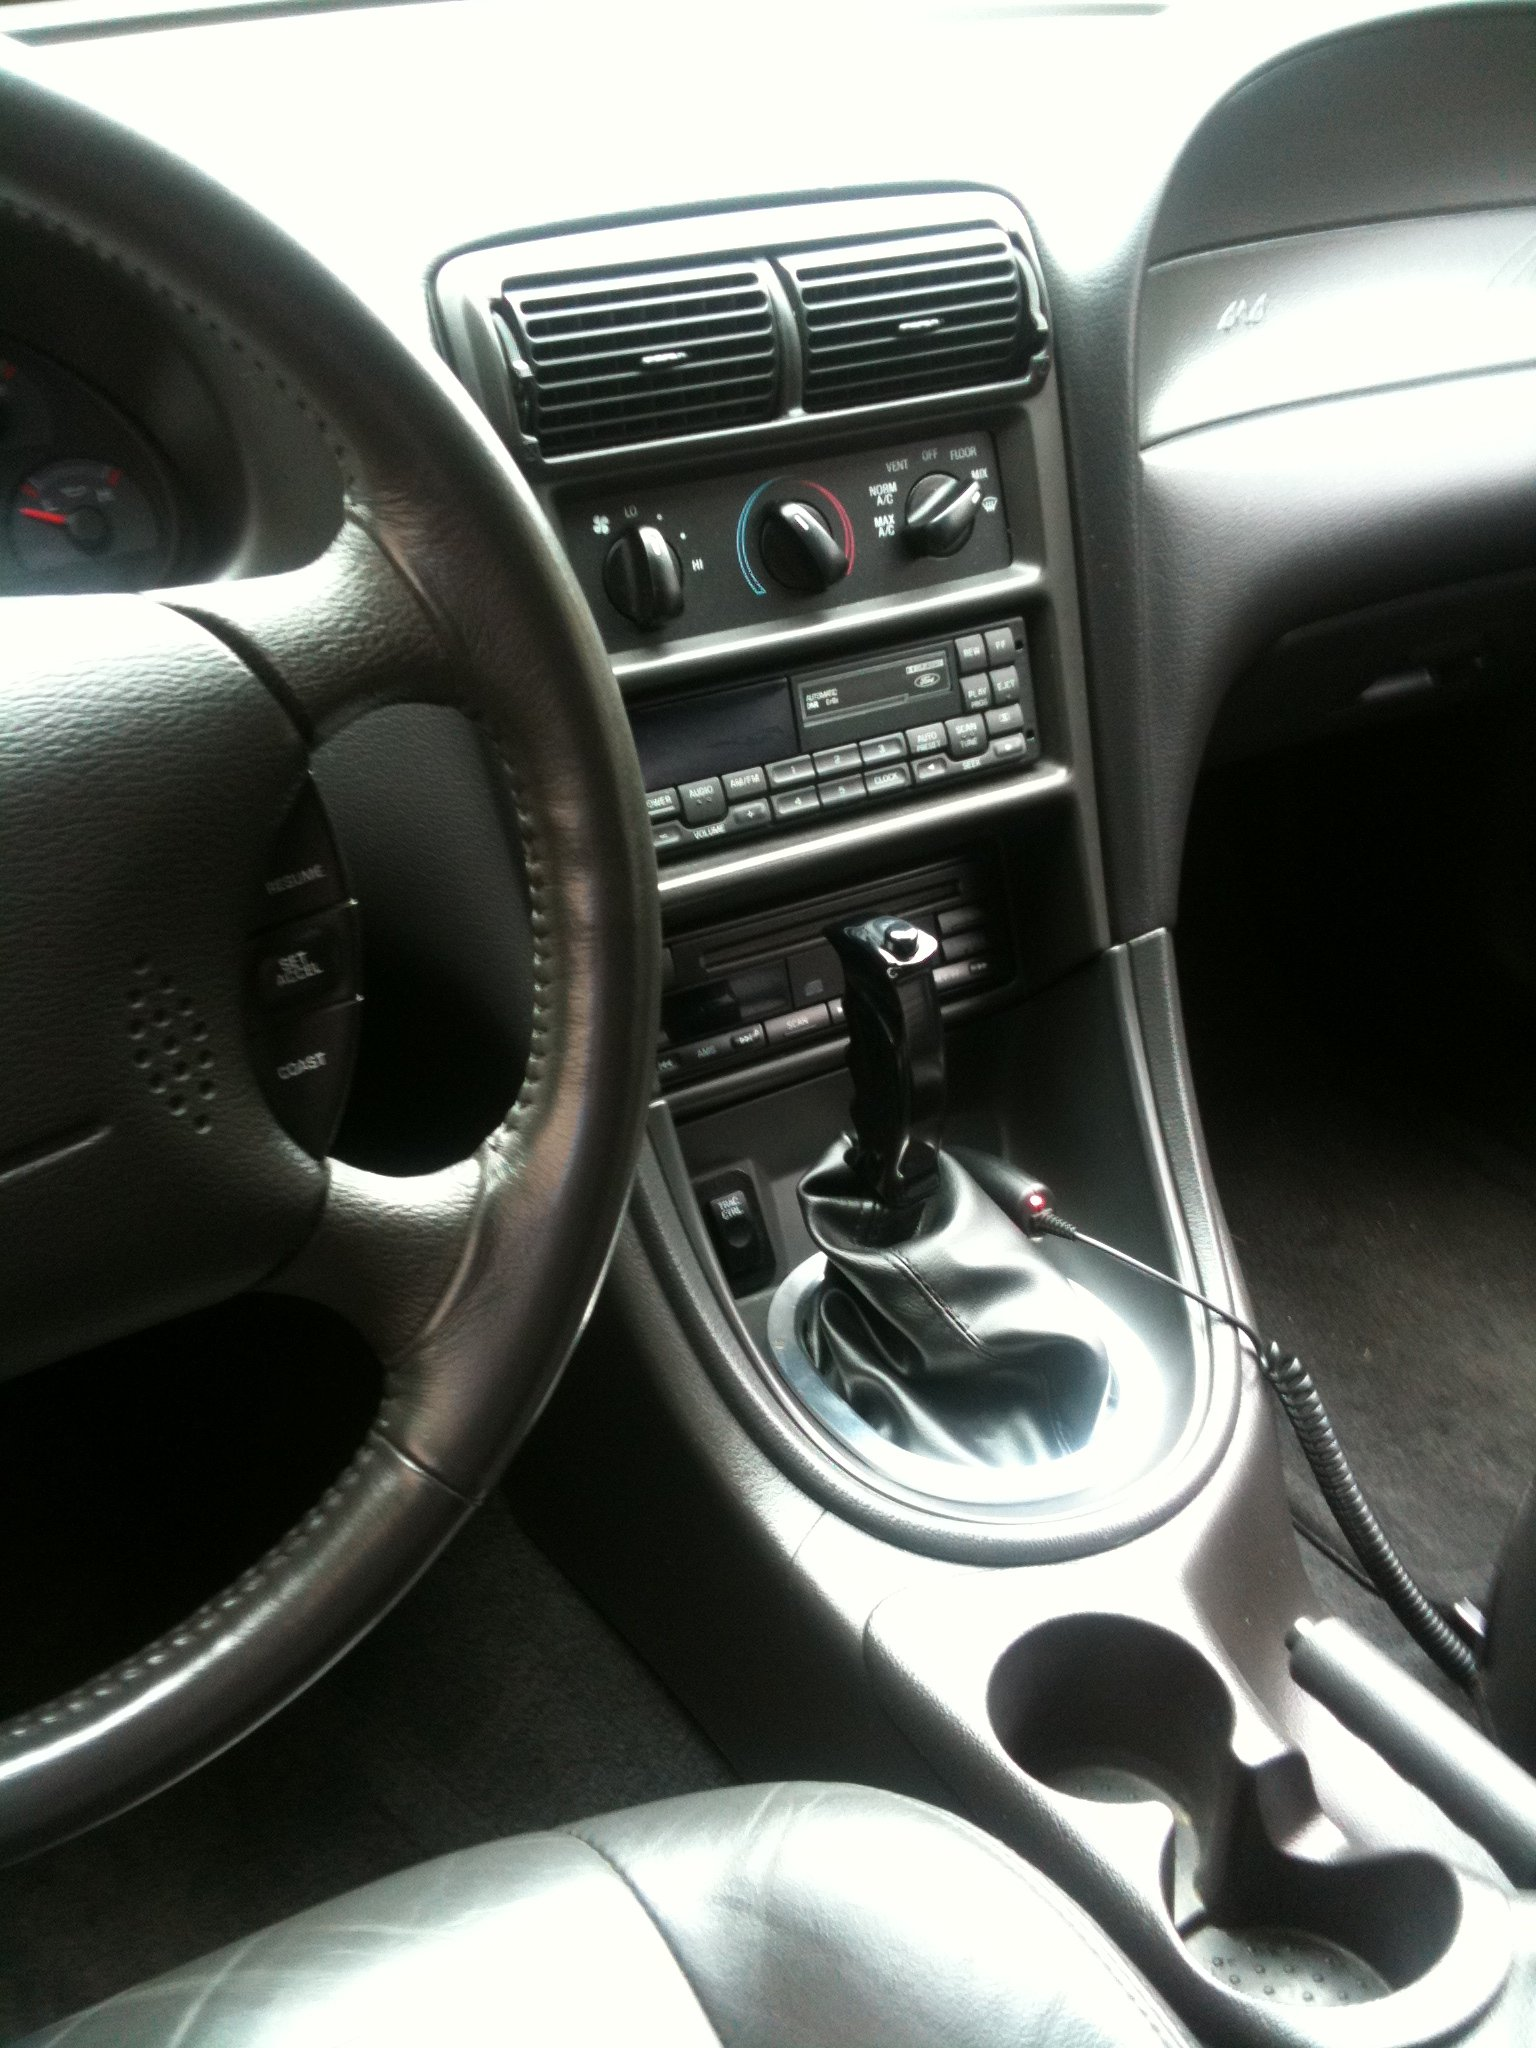 03 mustang gt upgrade questions-auto-shifter-006.jpg